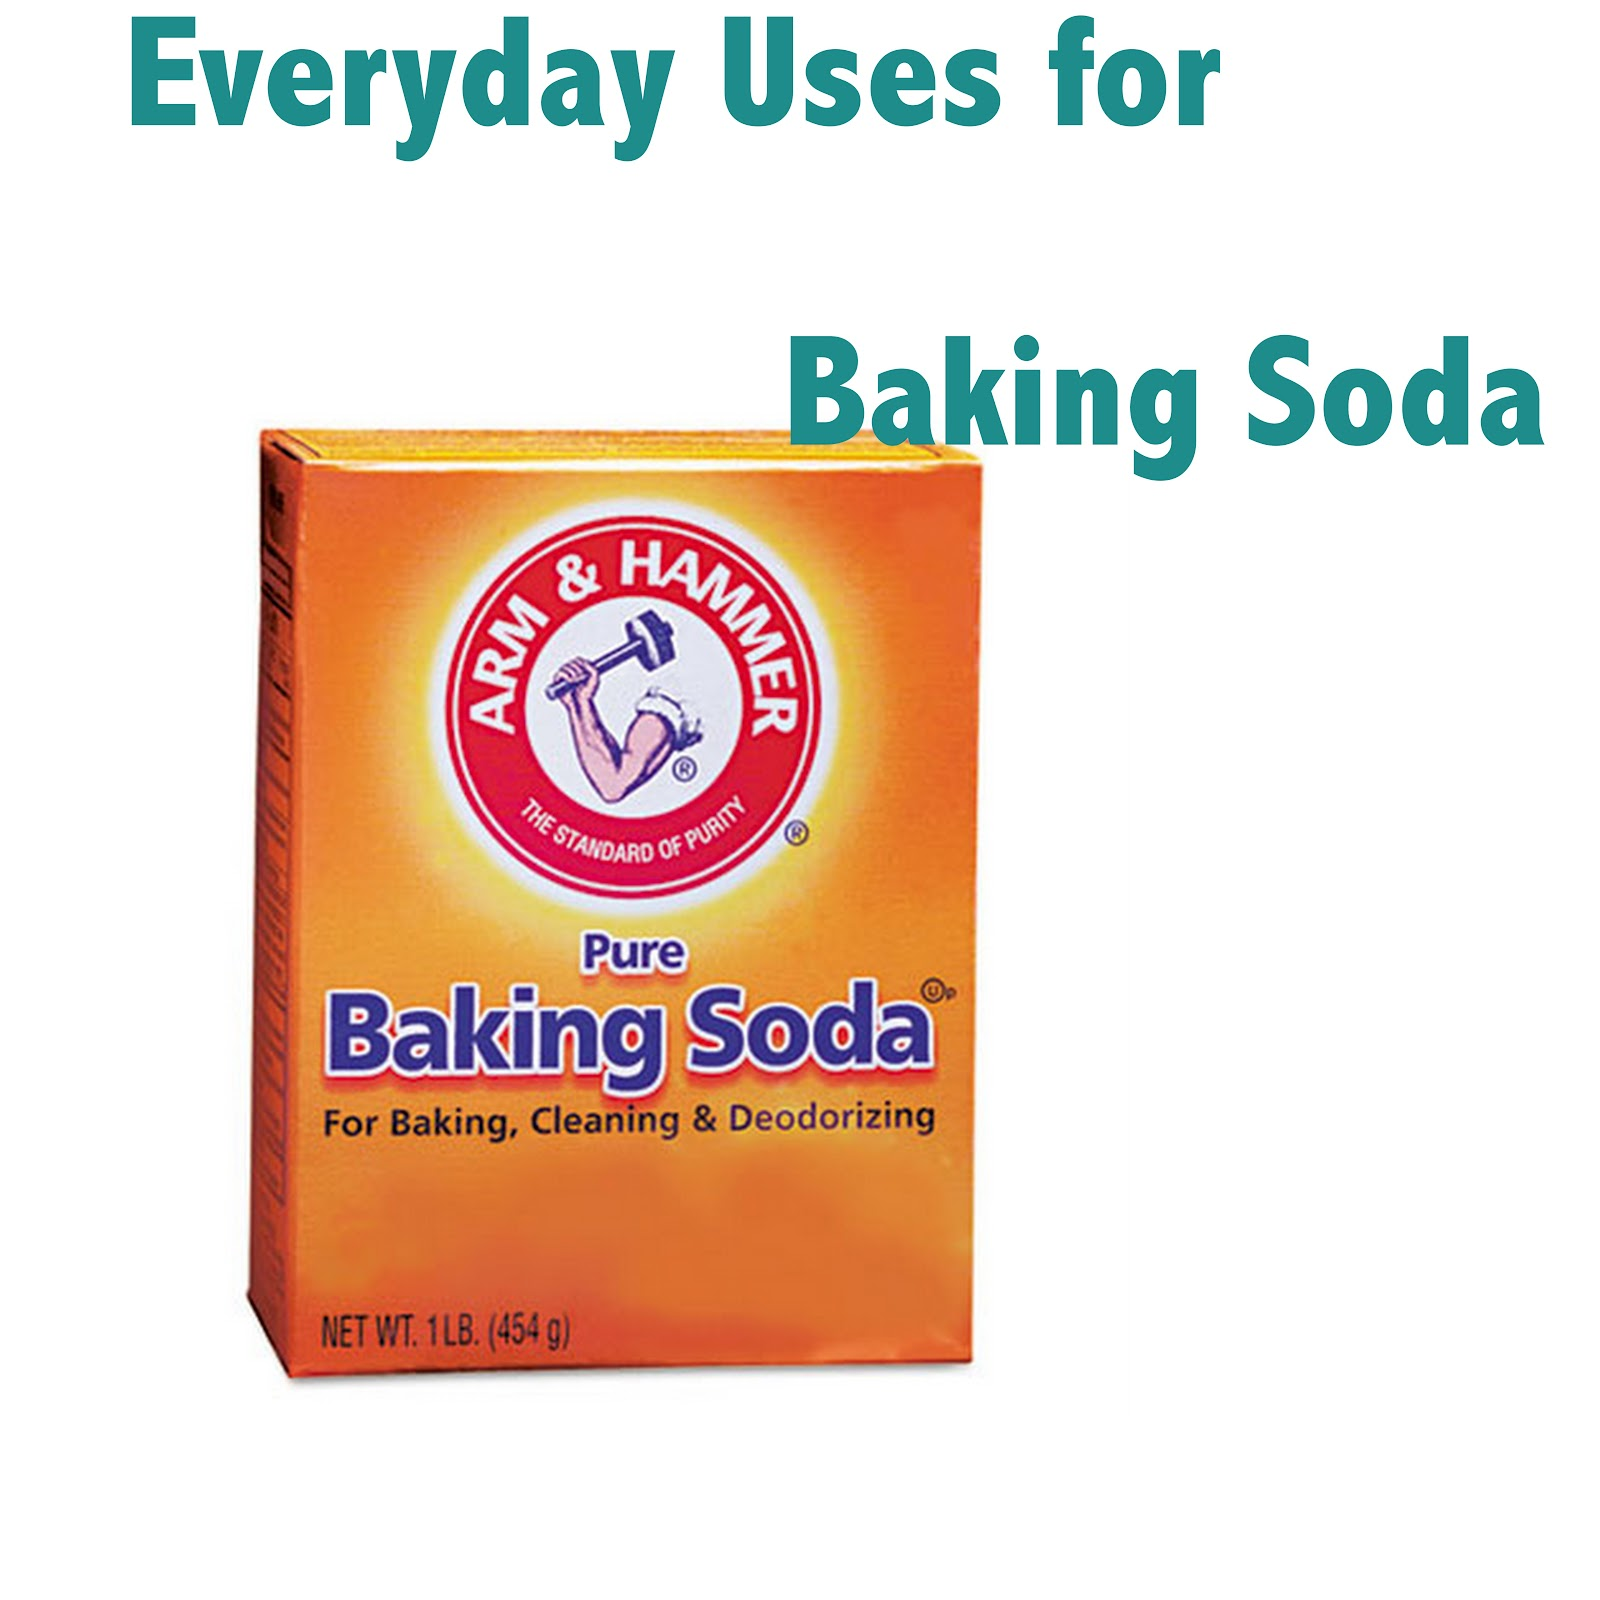 51 amazing uses for baking soda Read and download 51 uses for baking soda free ebooks in pdf format - general electric answering machine remote.